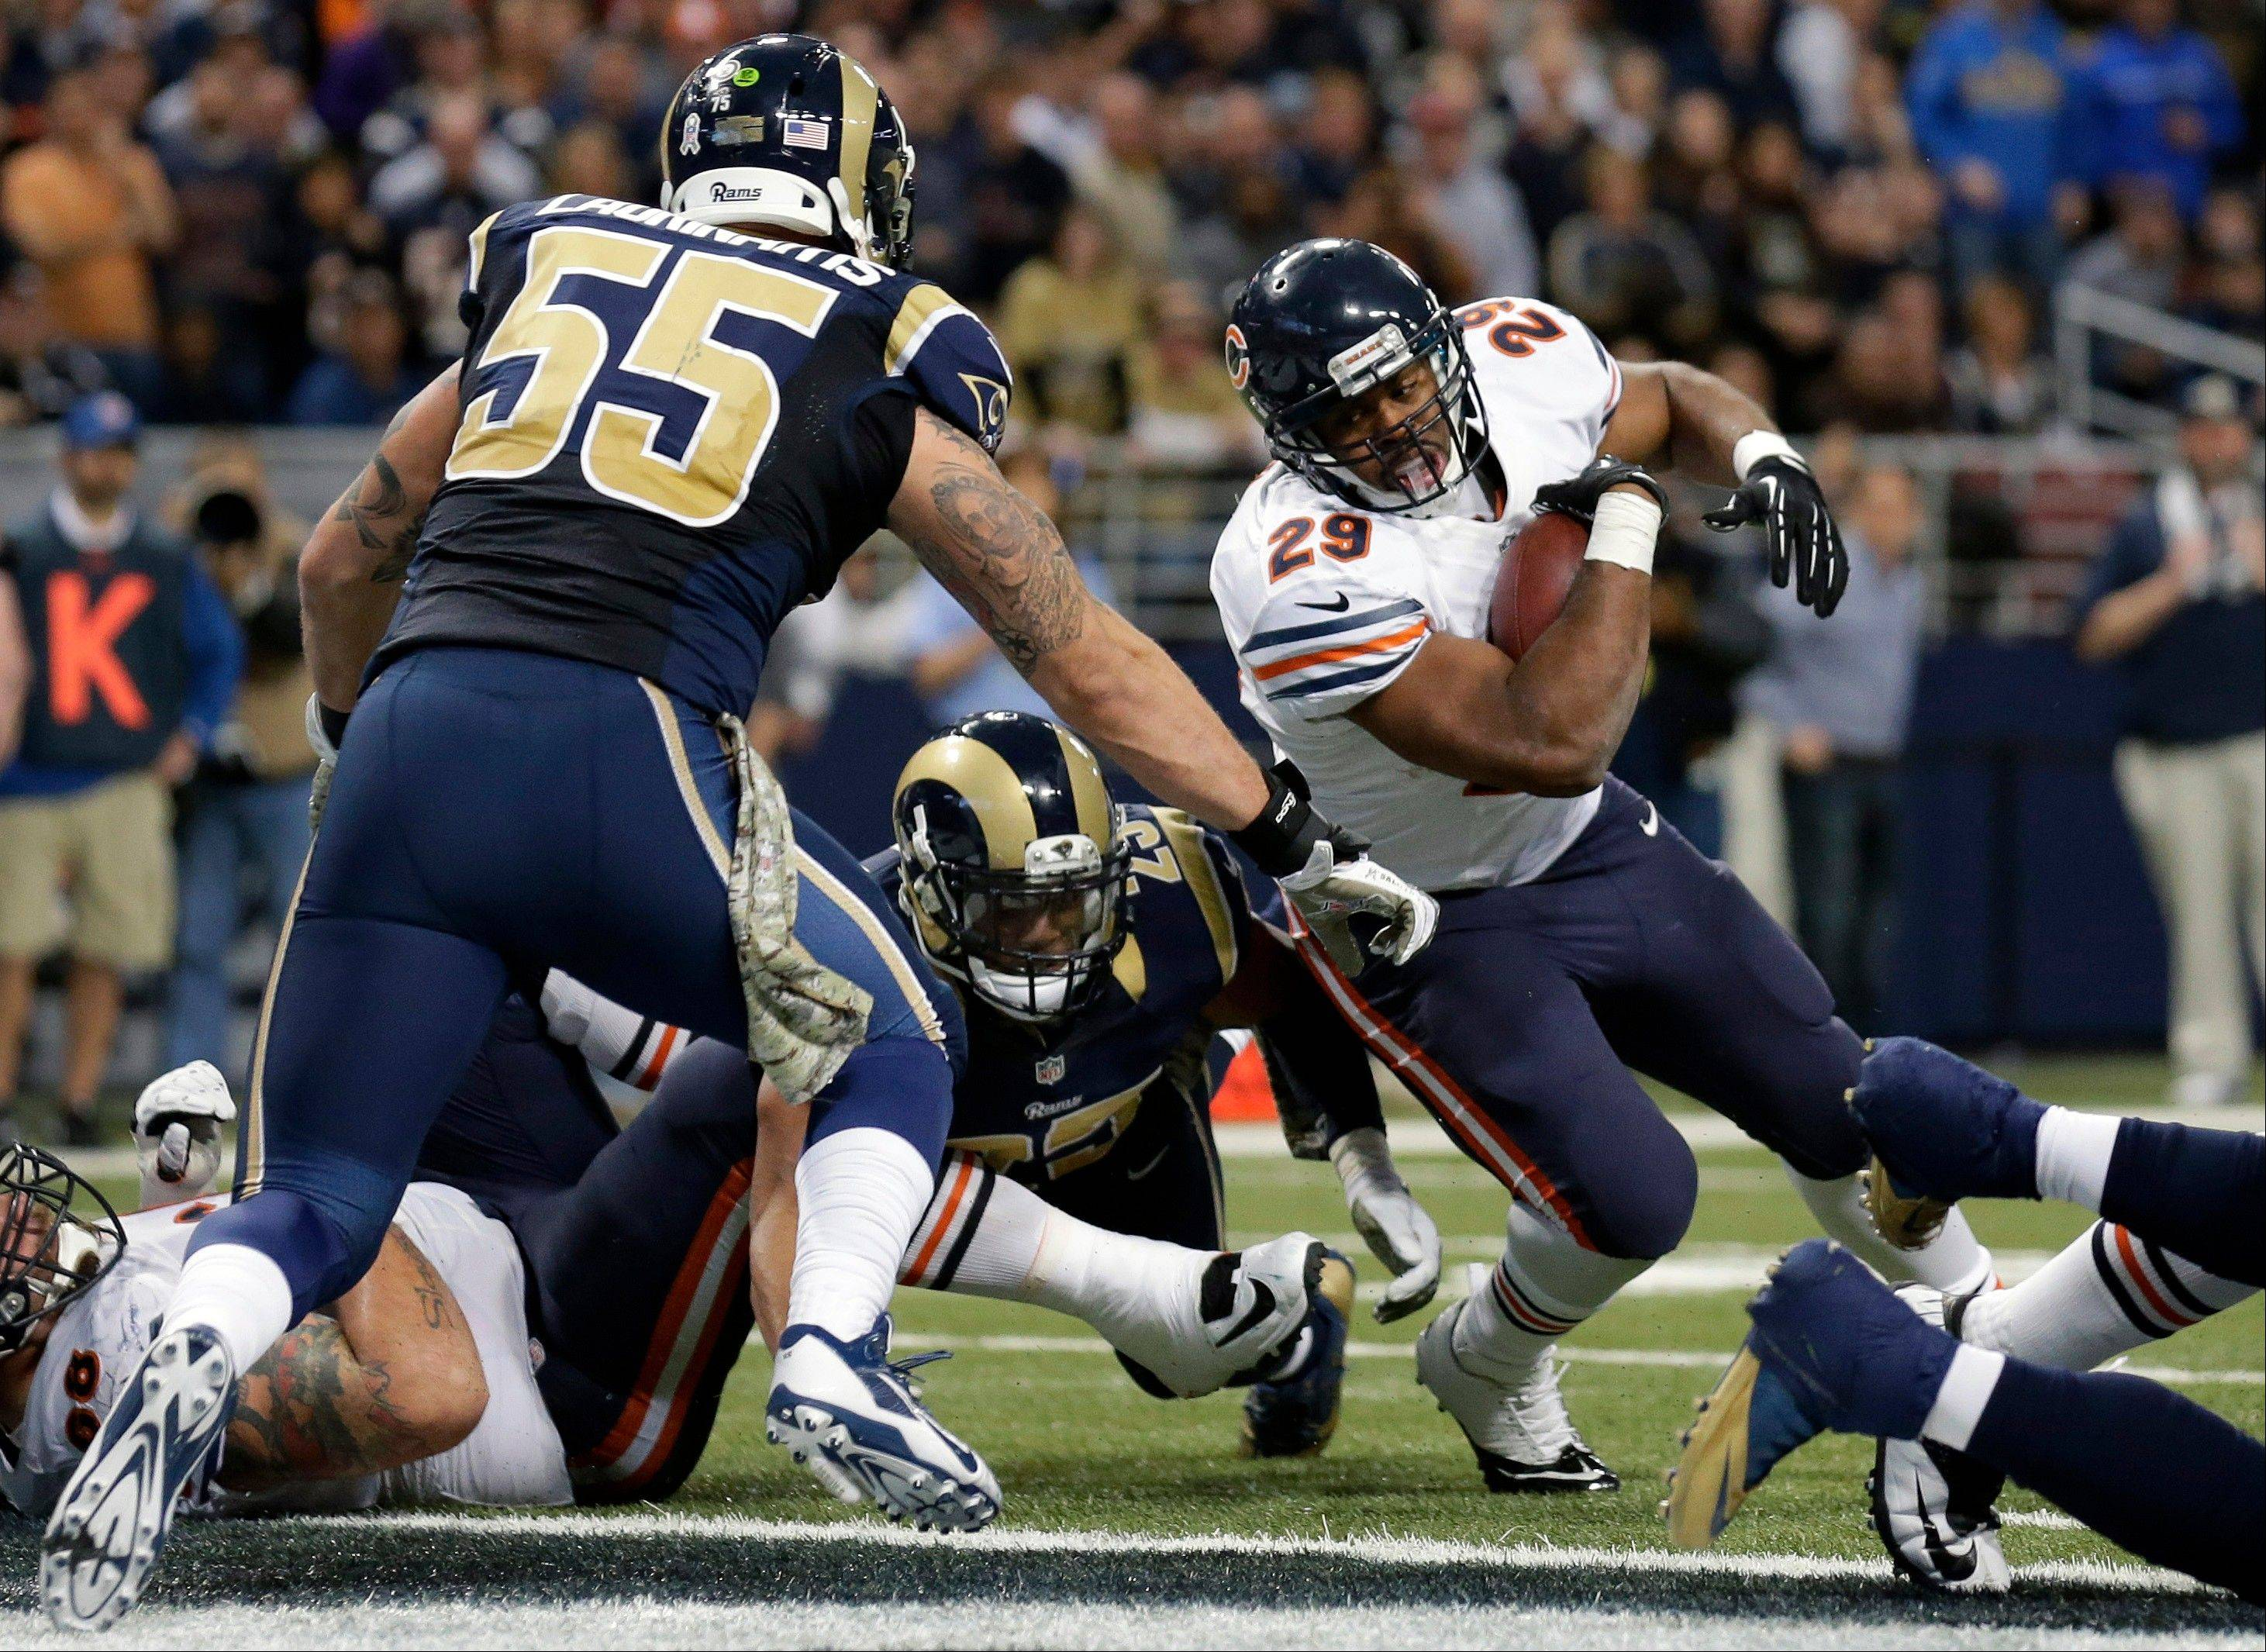 Bears running back Michael Bush, right, scores on a 1-yard run past St. Louis Rams linebacker James Laurinaitis (55) and safety T.J. McDonald during the fourth quarter of an NFL football game on Sunday, Nov. 24, 2013, in St. Louis.